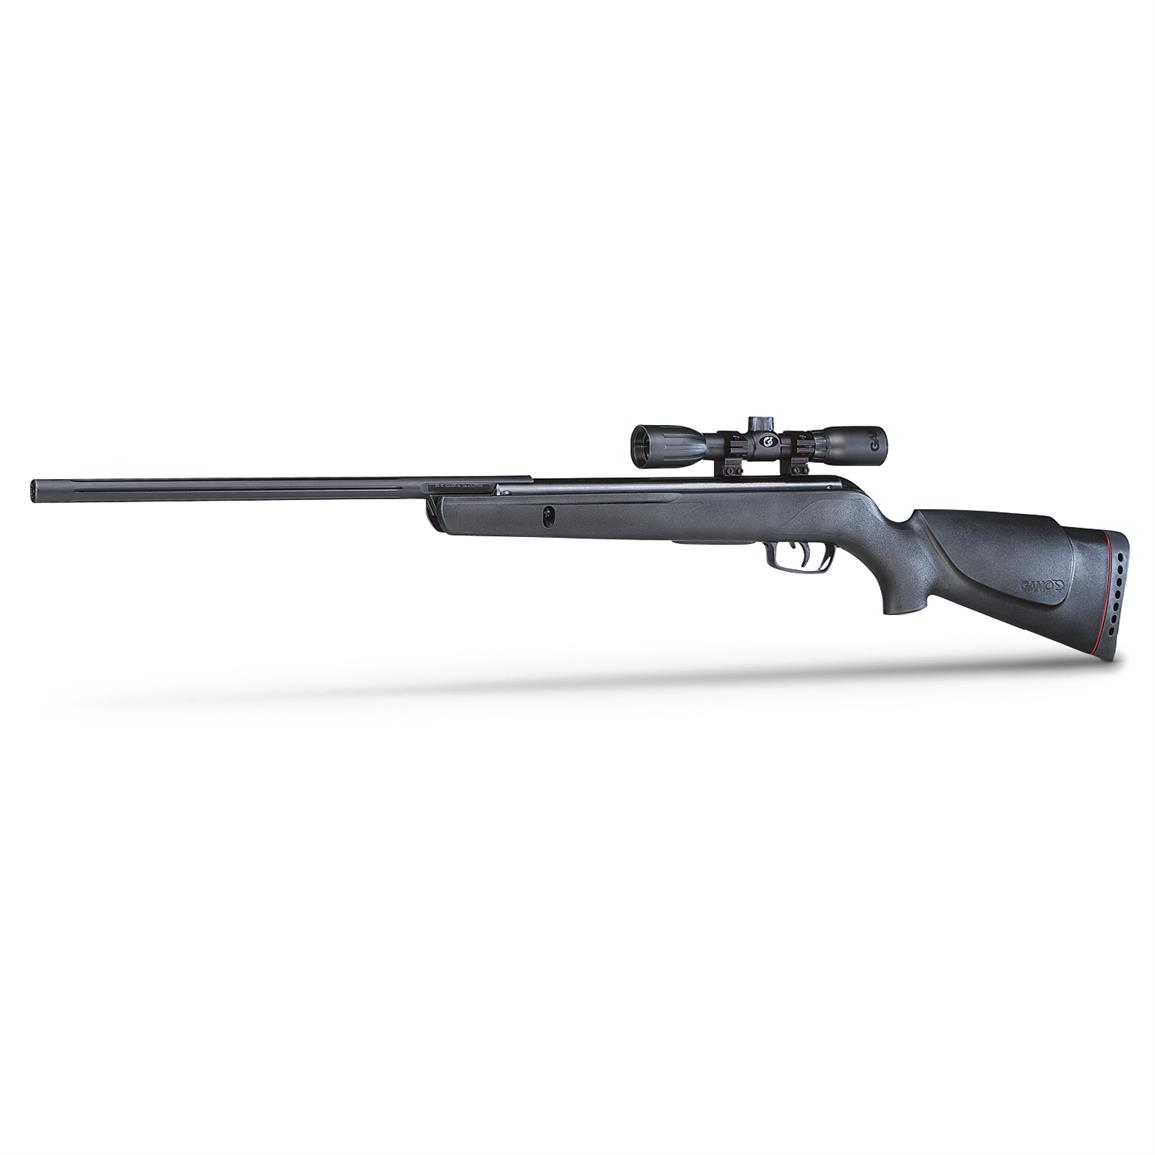 "Gamo Varmint IGT Break Barrel Air Rifle, .177 Caliber, 17.8"" Barrel, 4x32mm Scope"